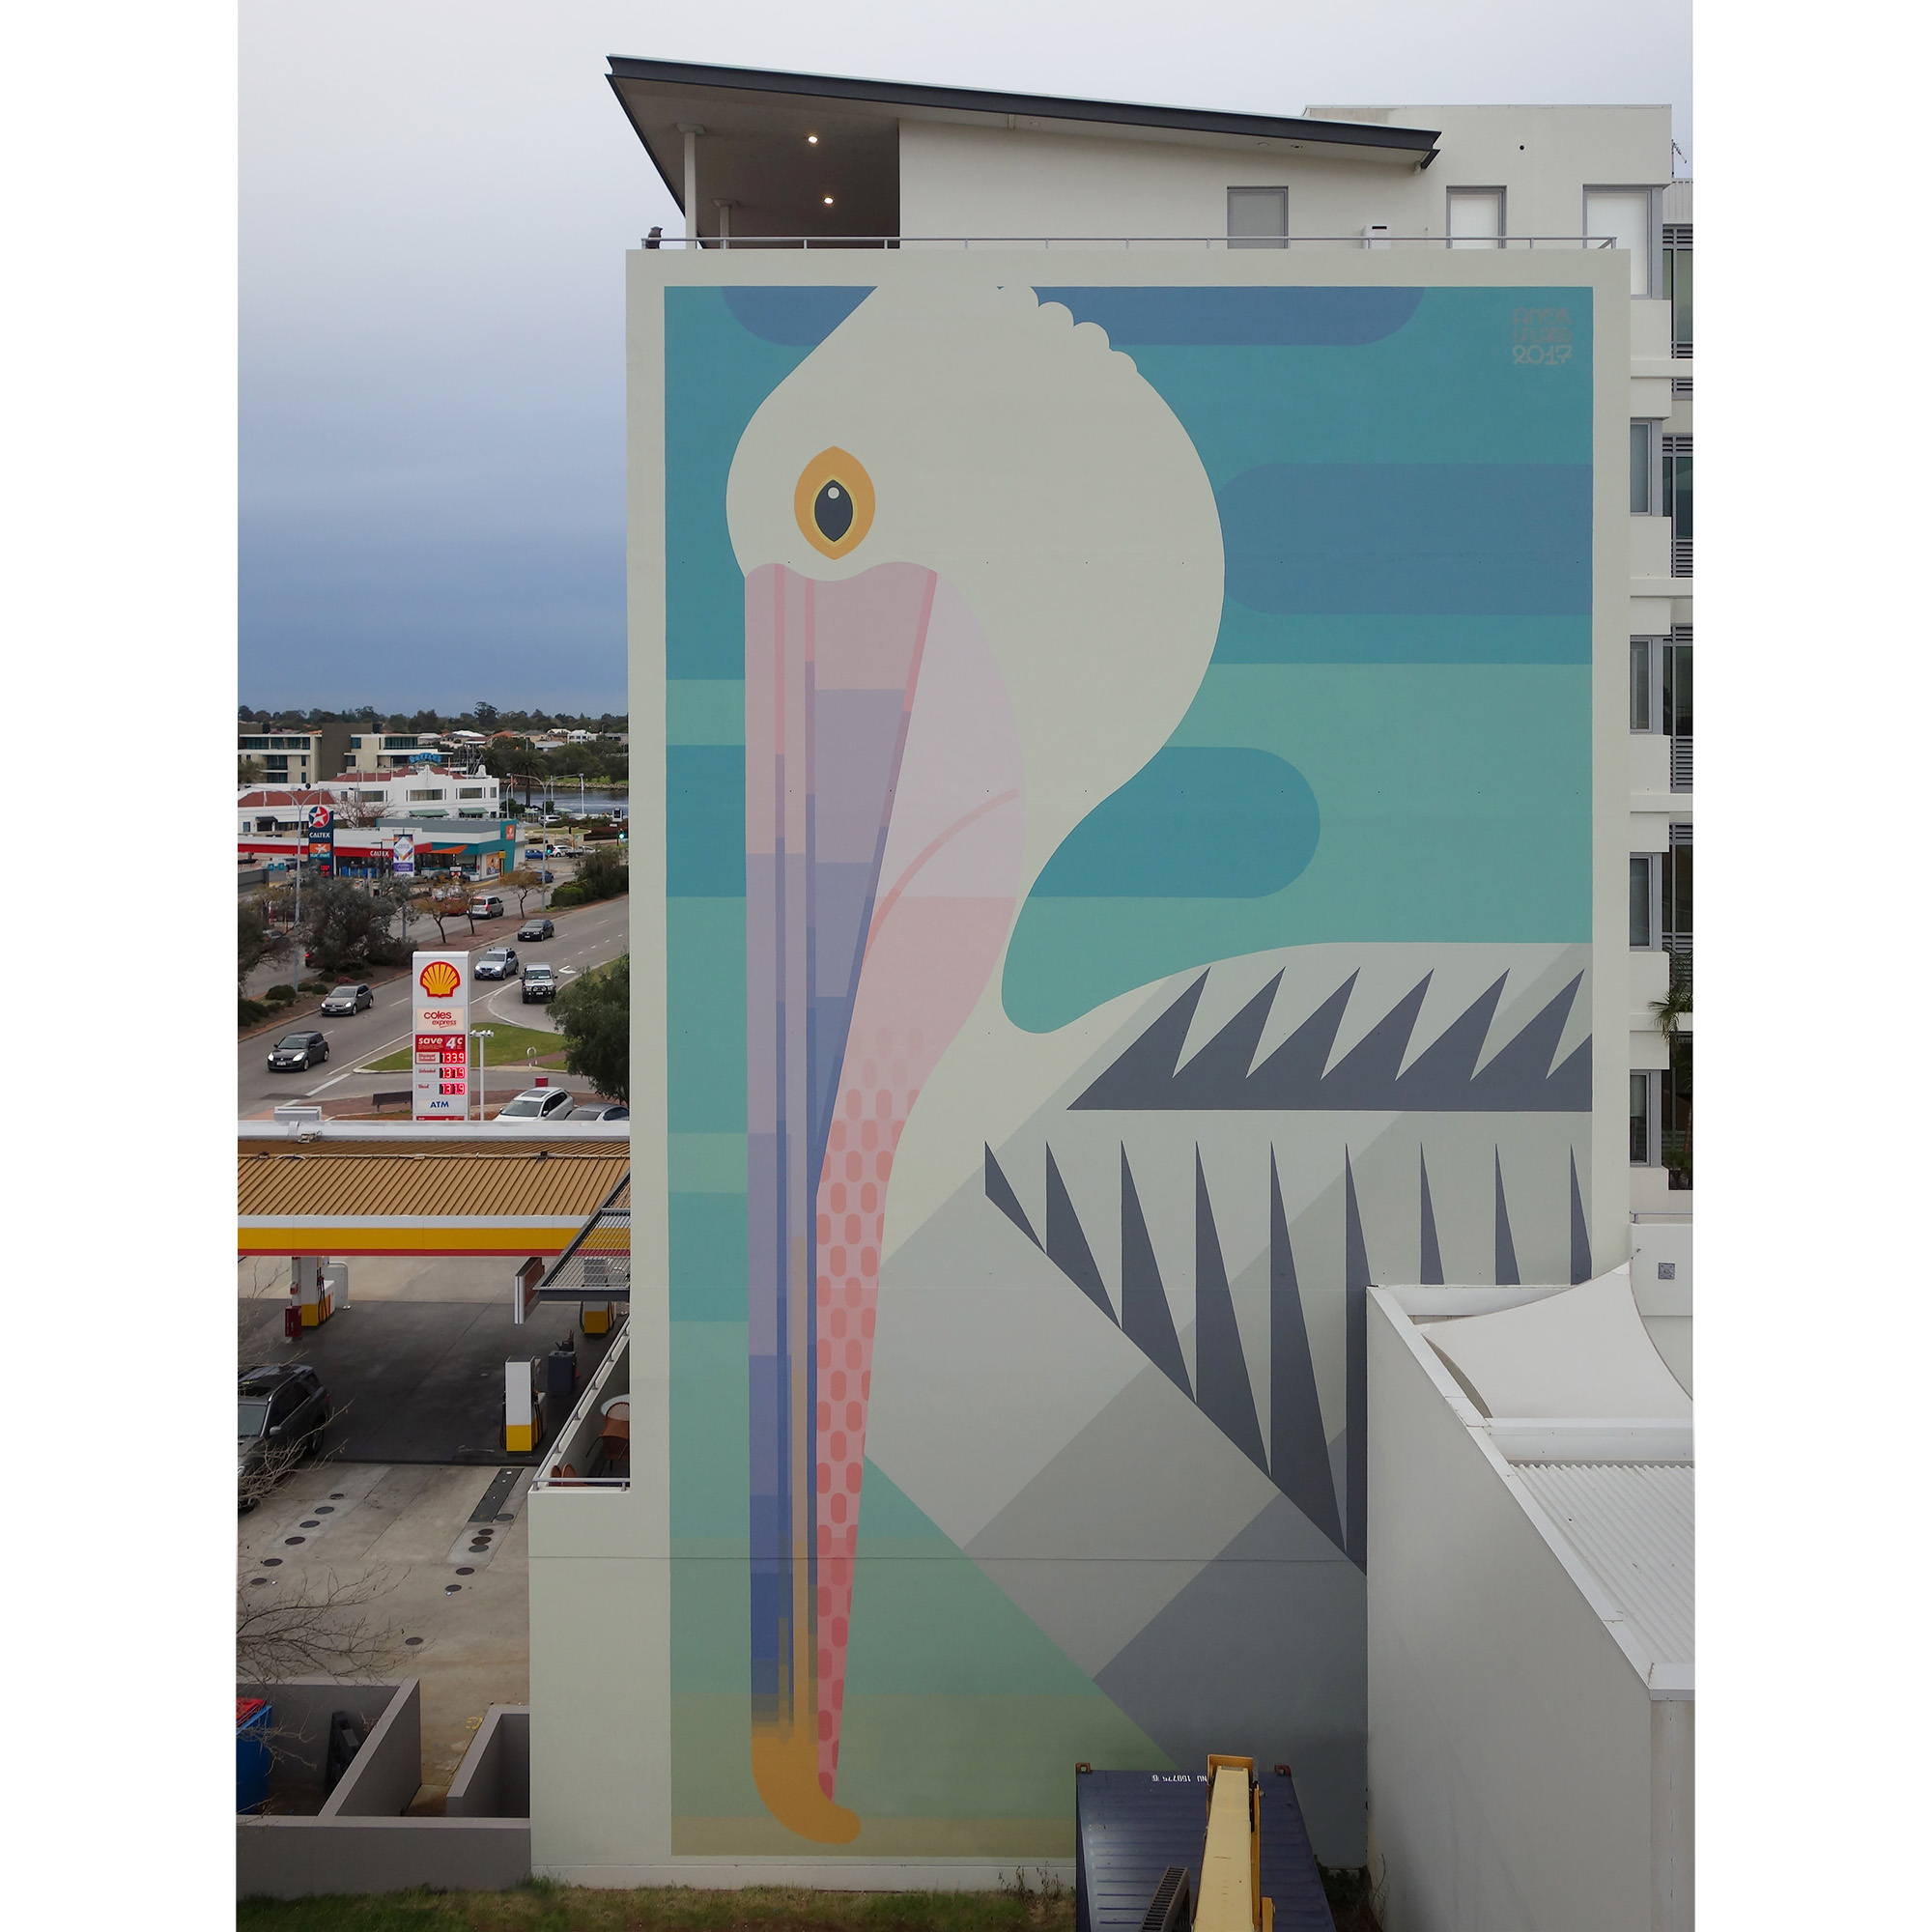 Perth, WA Australia 2017. 'Australian Pelican' commissioned by City of Melville